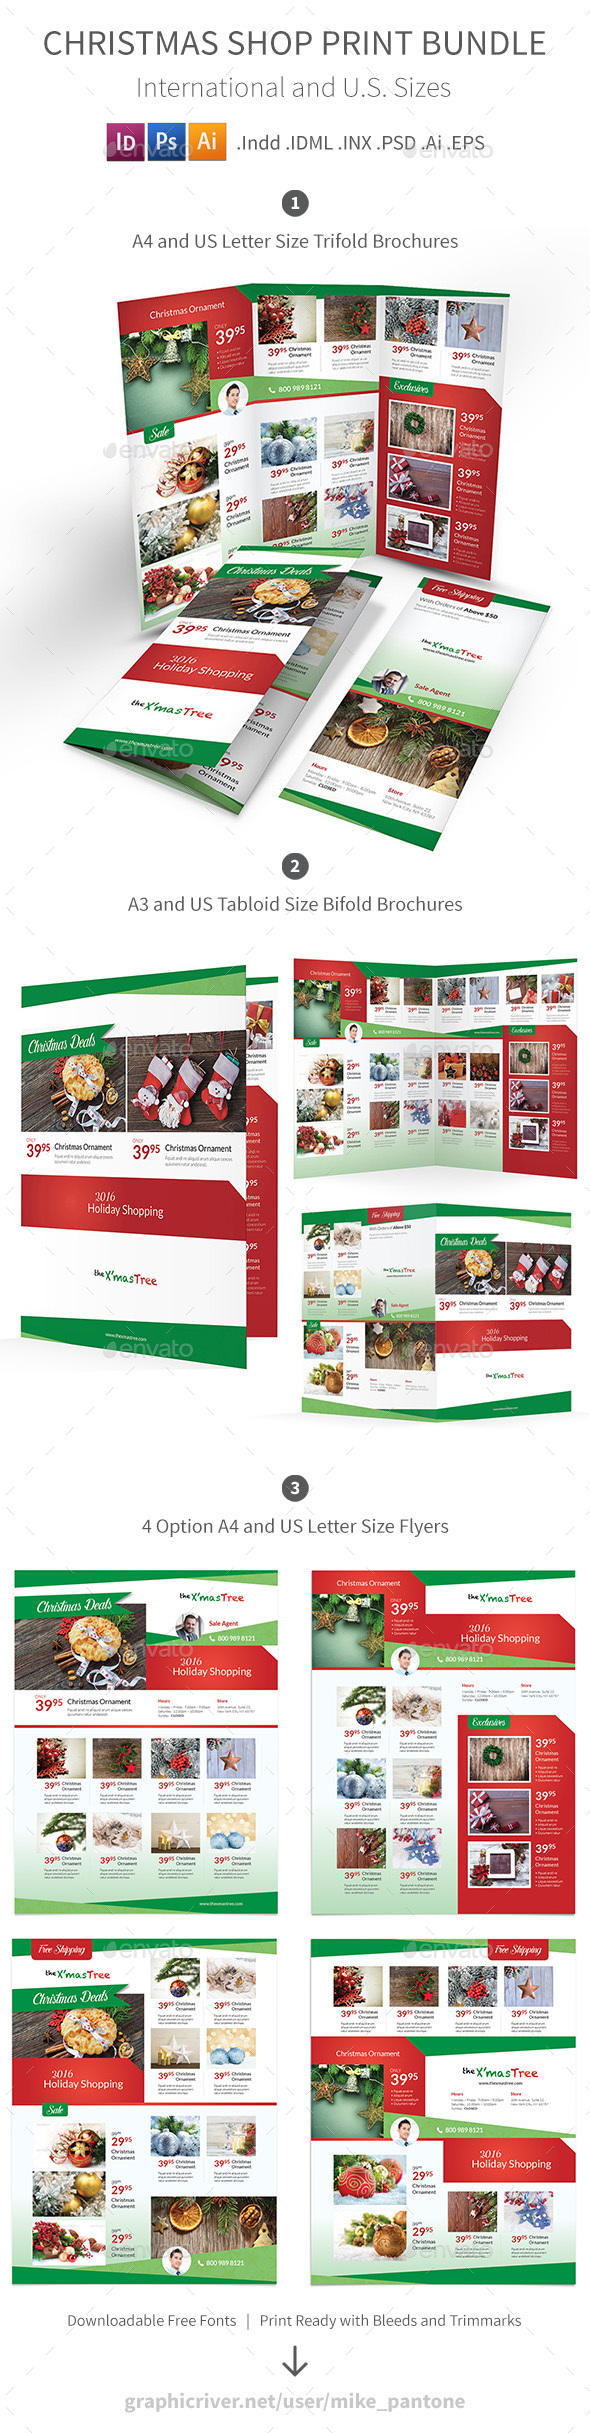 Christmas Shop Print Bundle - Informational Brochures